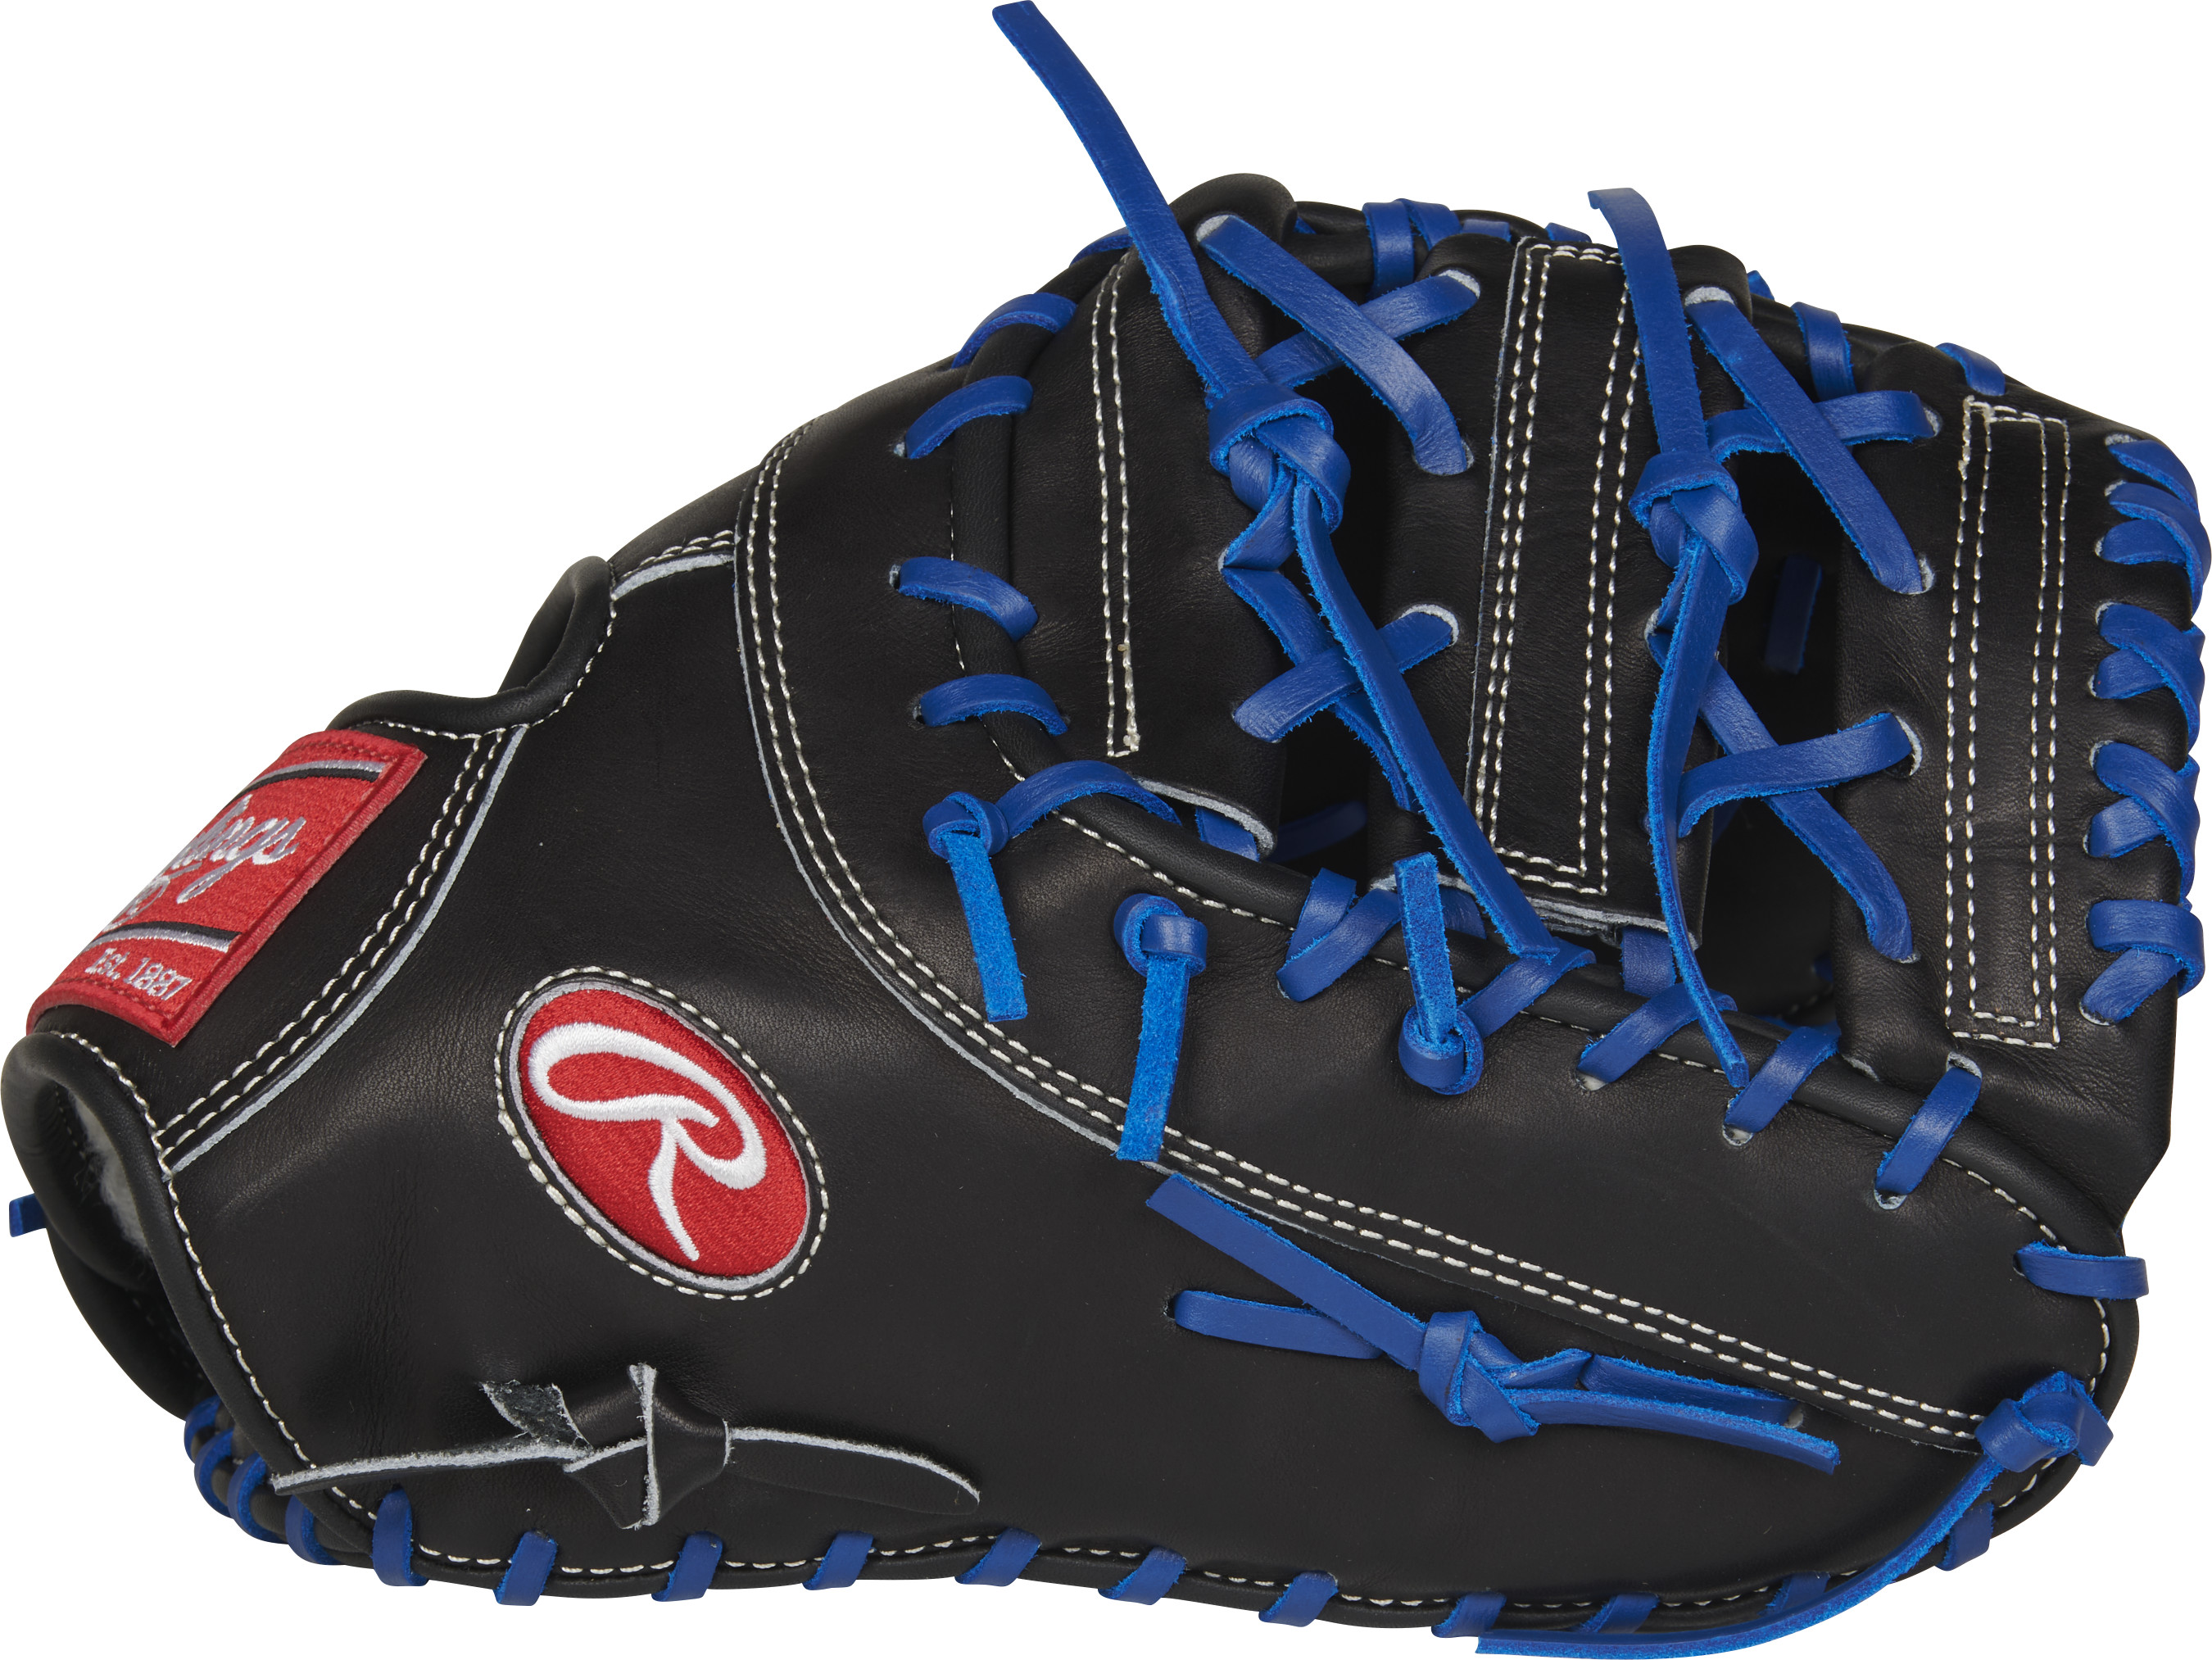 http://www.bestbatdeals.com/images/gloves/rawlings/PROSAR44-3.jpg